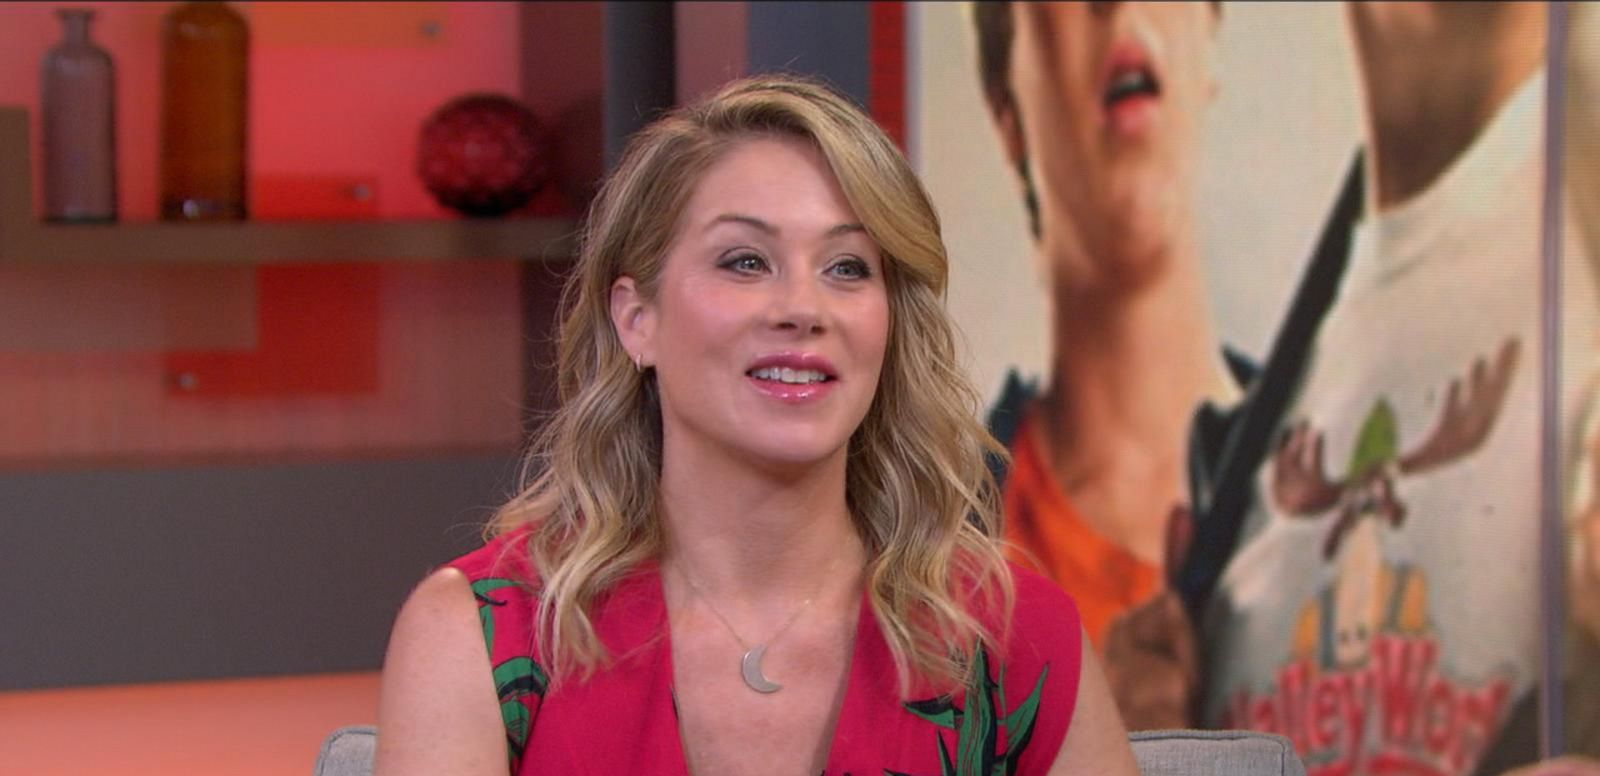 VIDEO: Christina Applegate Stars in Hilarious New 'Vacation' Movie